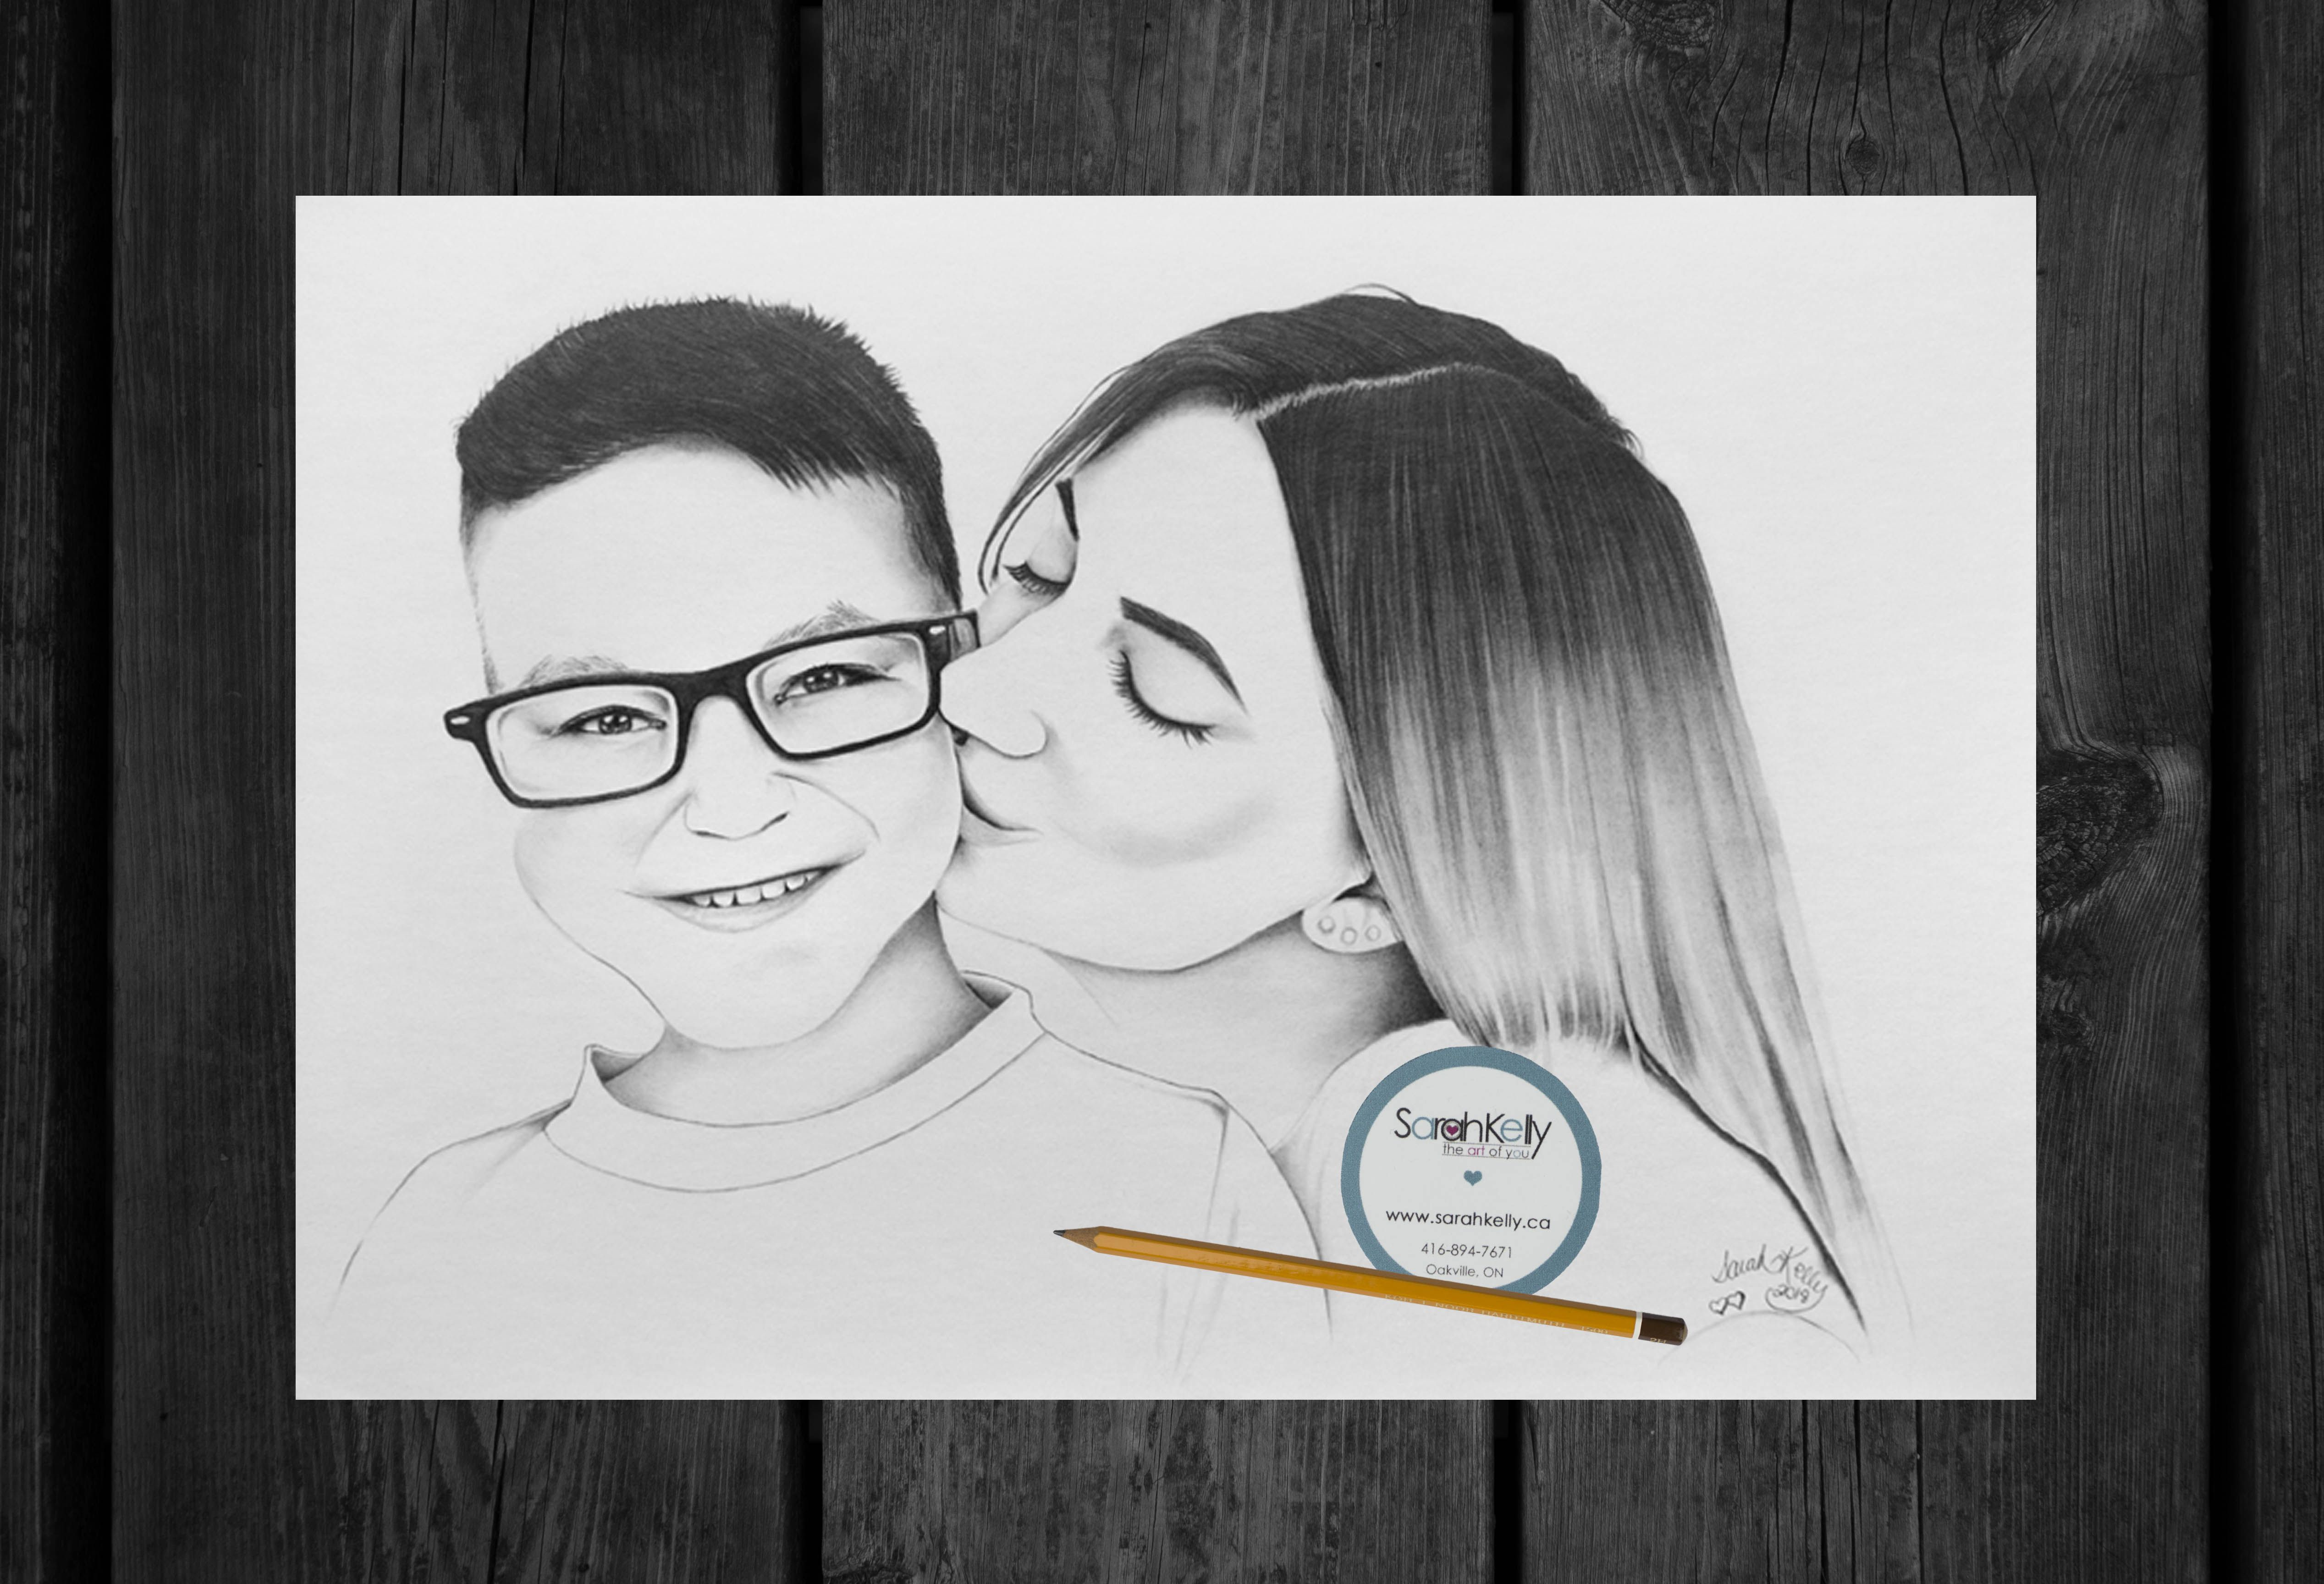 Mother's love - a wonderful birthday gift for this Mom <3